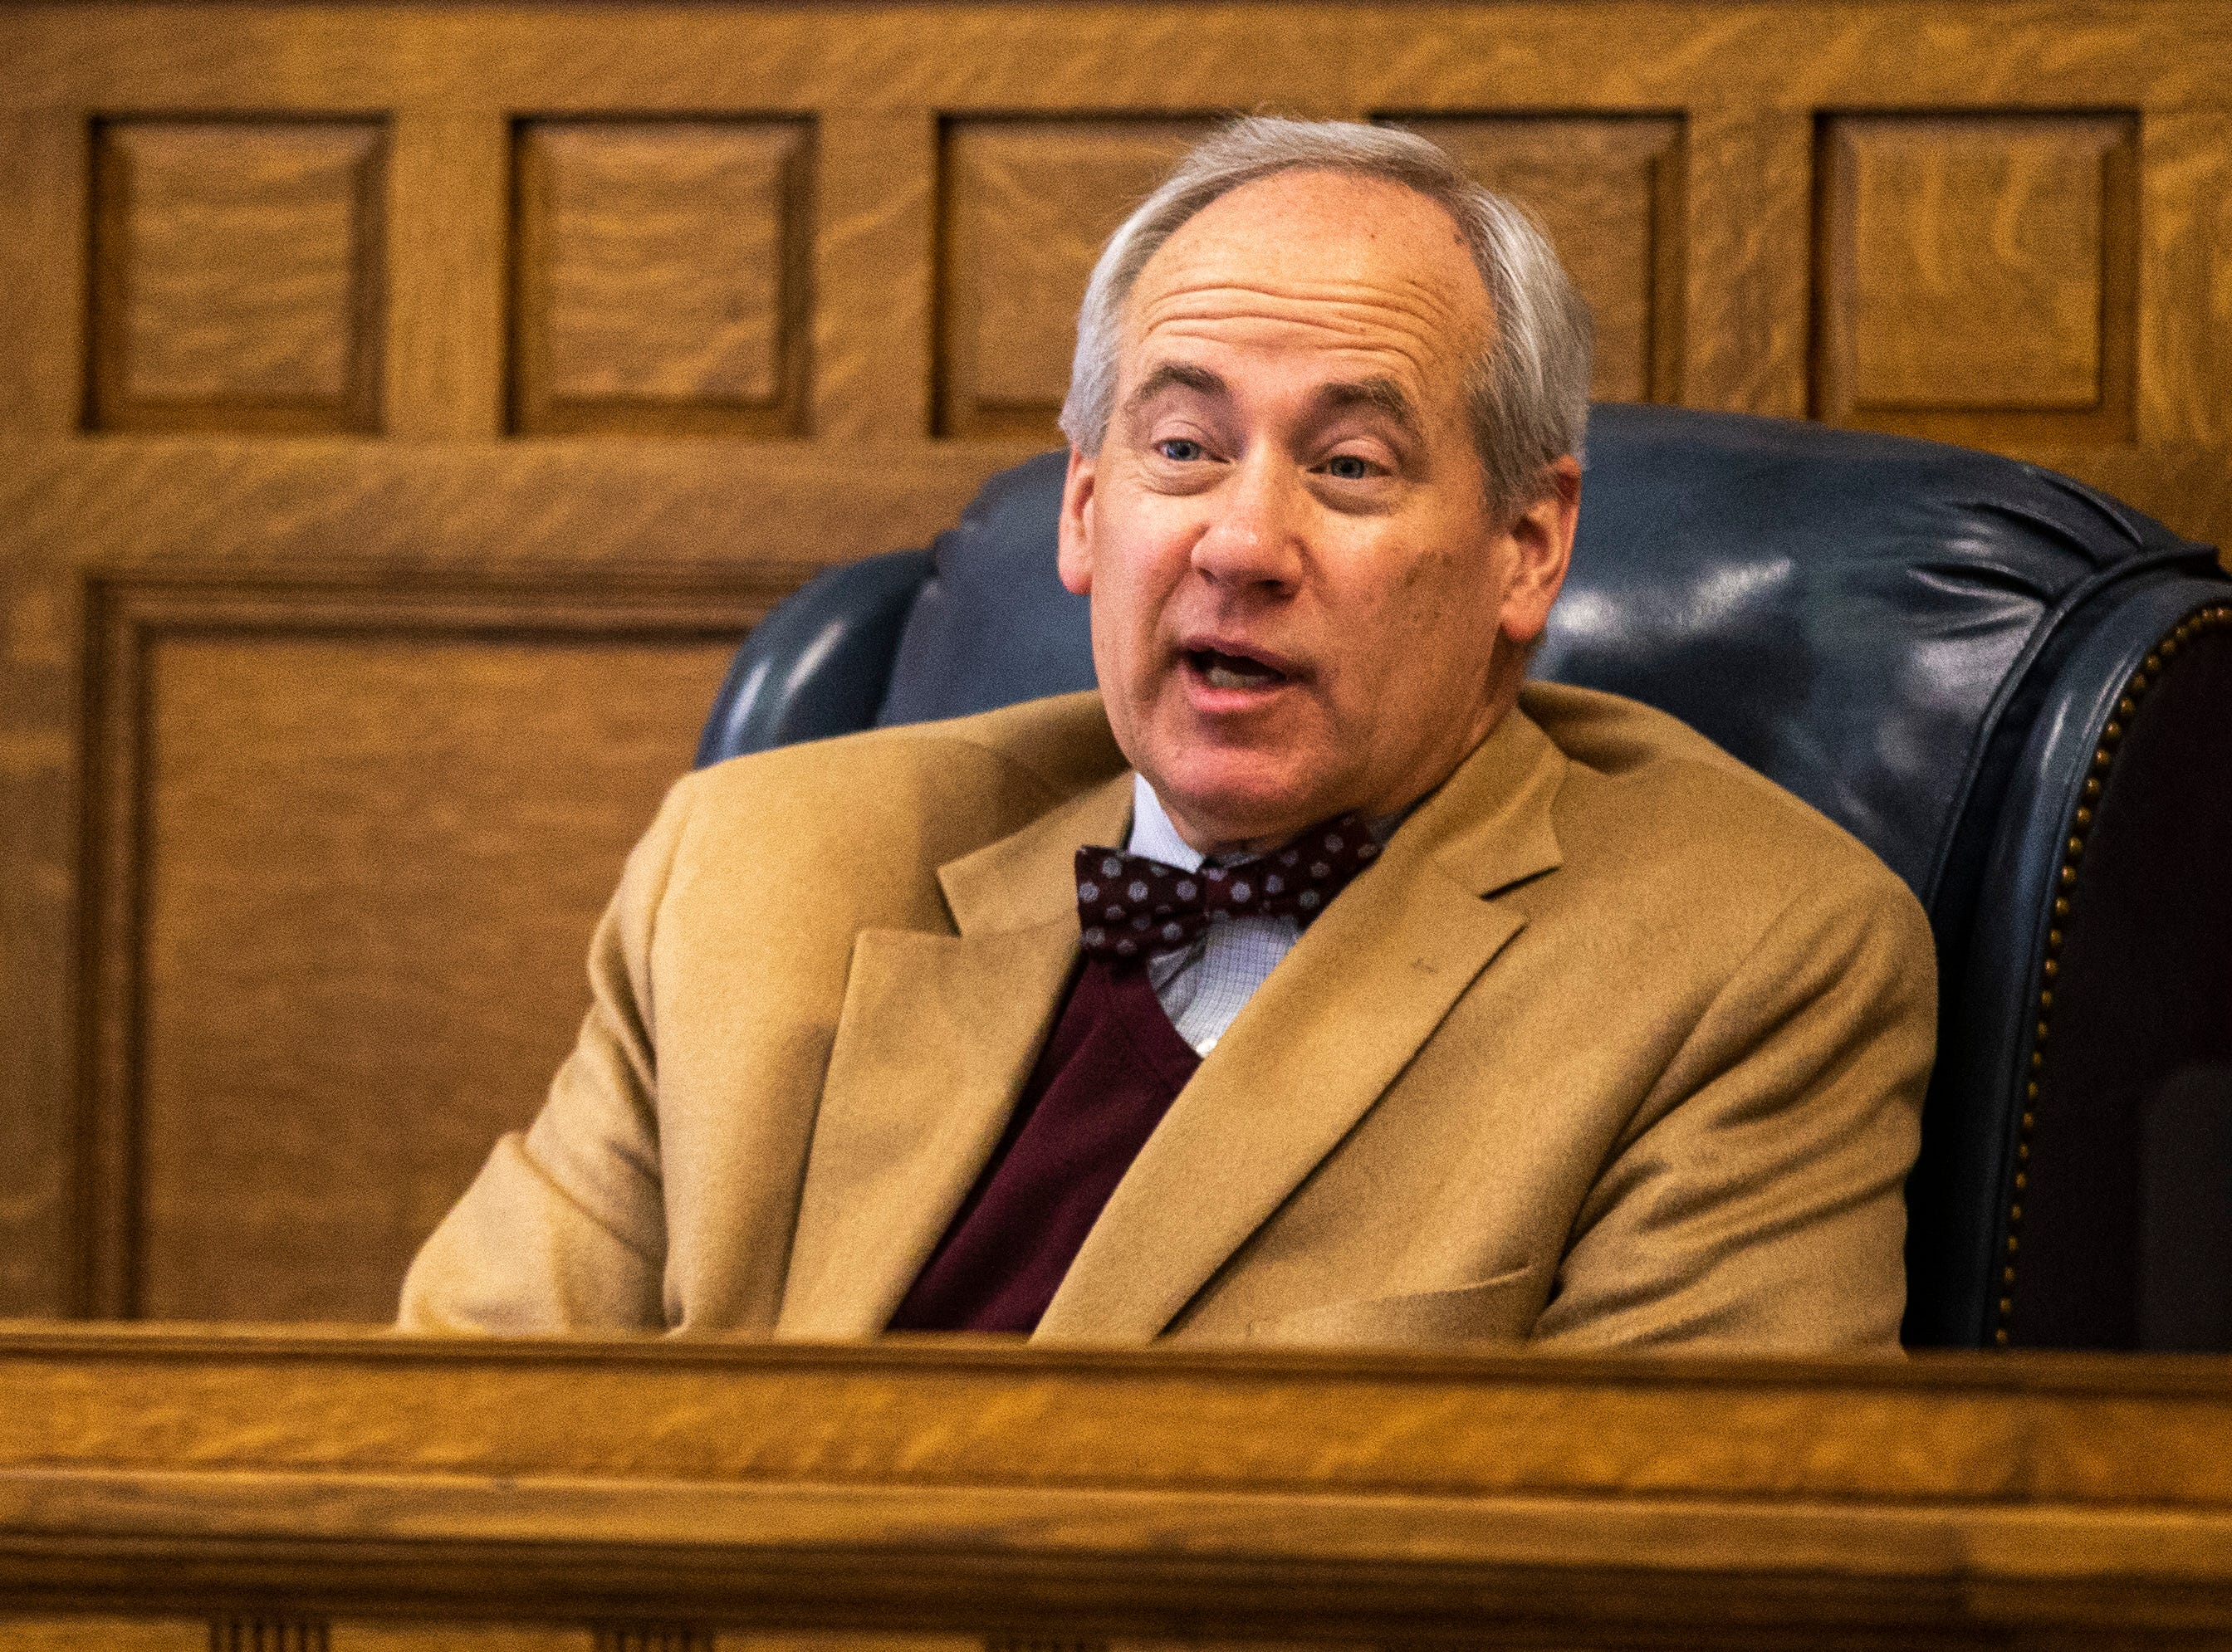 District 5 Judge Robert B. Hanson speaks during a pre-litigation hearing, Monday, Feb. 18, 2019 at Johnson County Courthouse in Iowa City, Iowa.